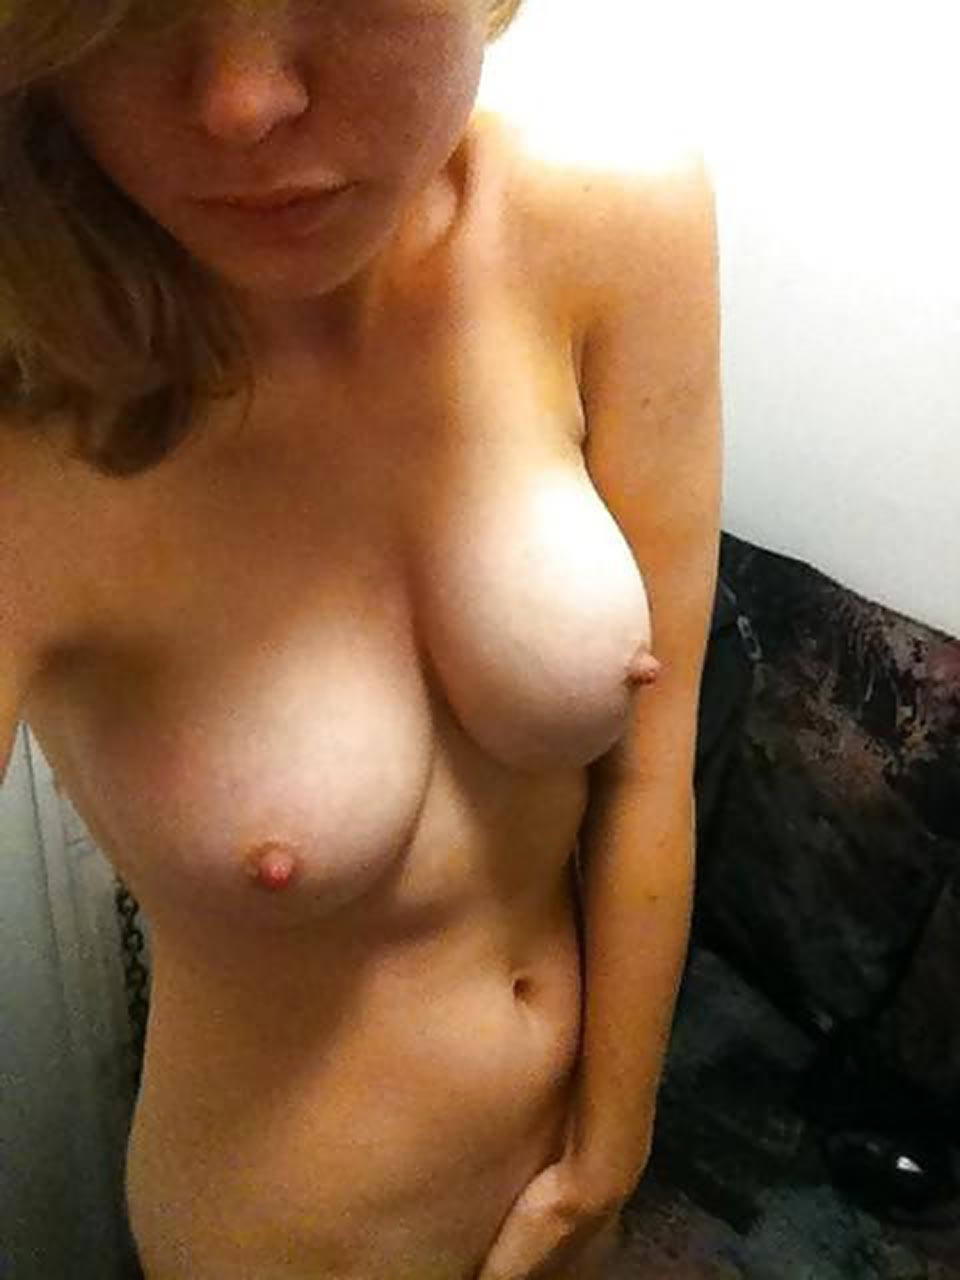 American Actress Nude Videos brie larson nude leaked pics & scenes collection